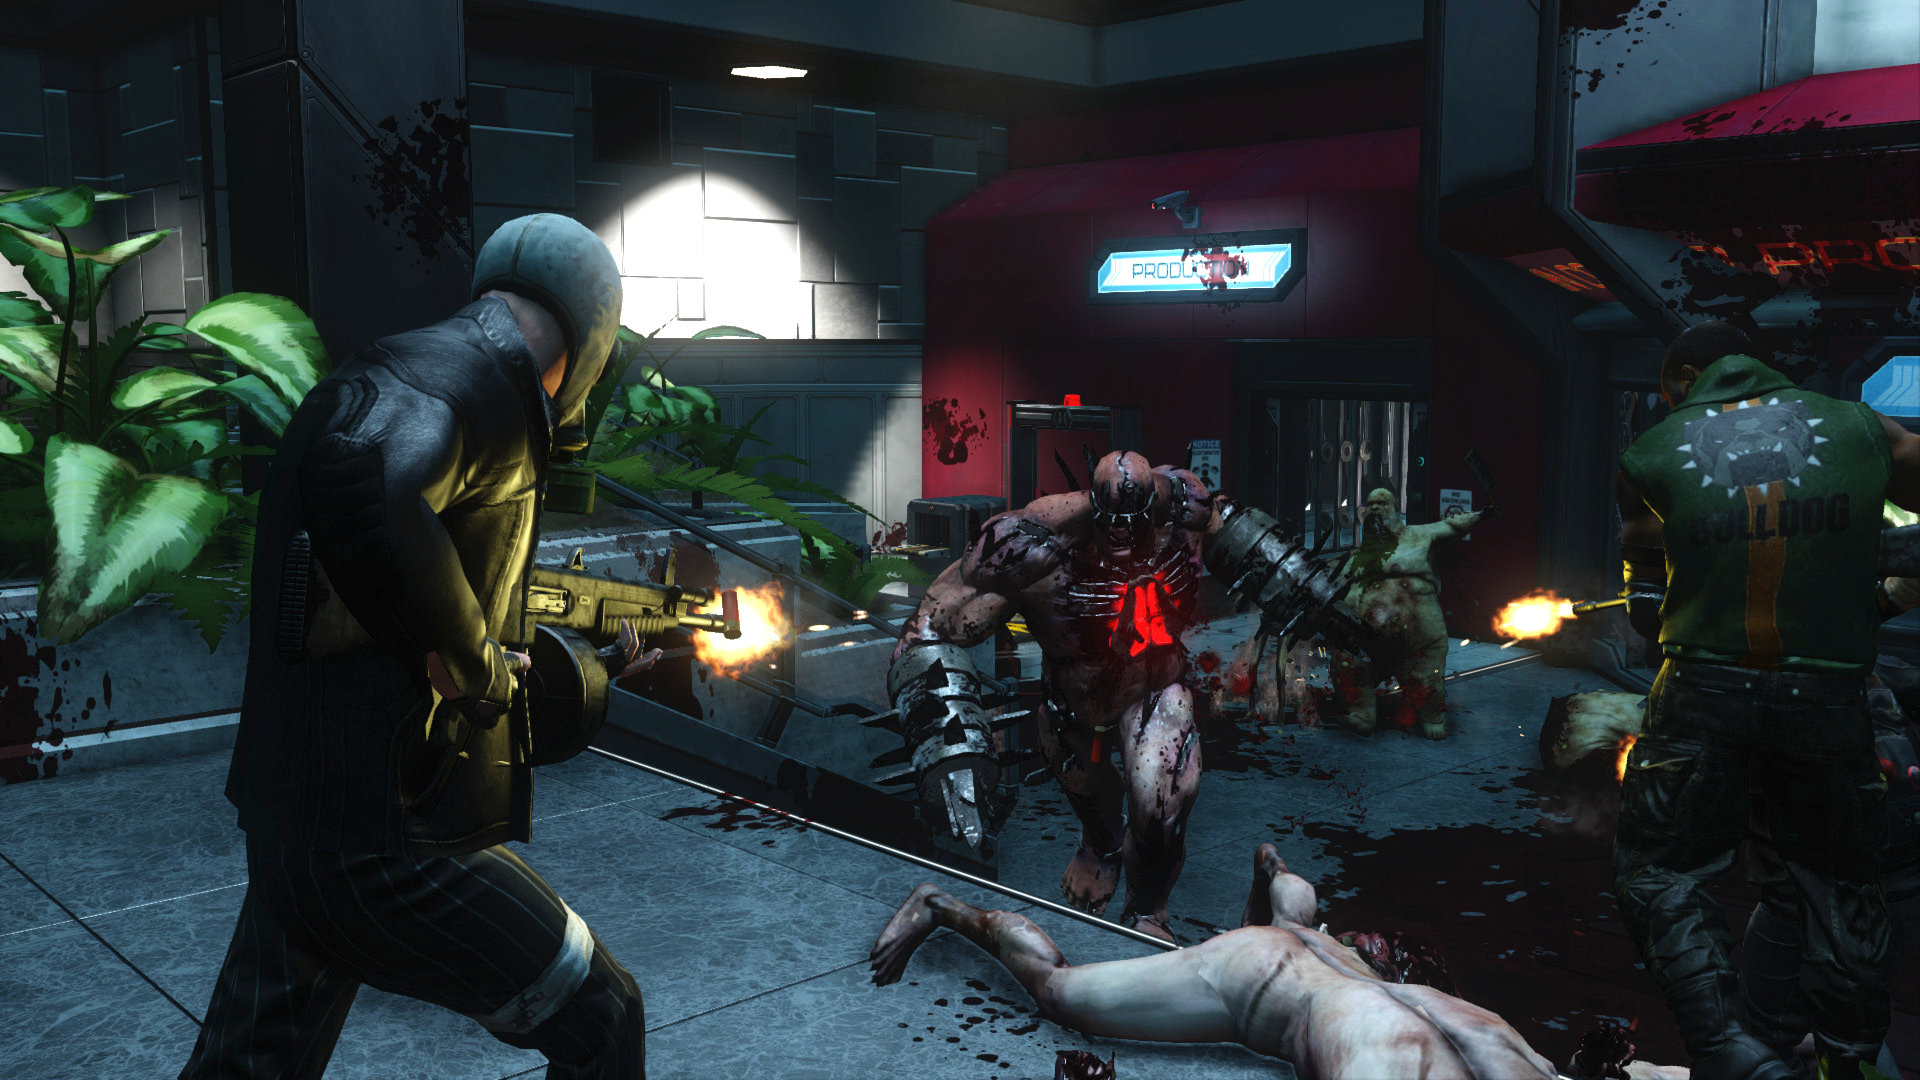 killing-floor-2-screenshot-01-ps4-us-09dec14